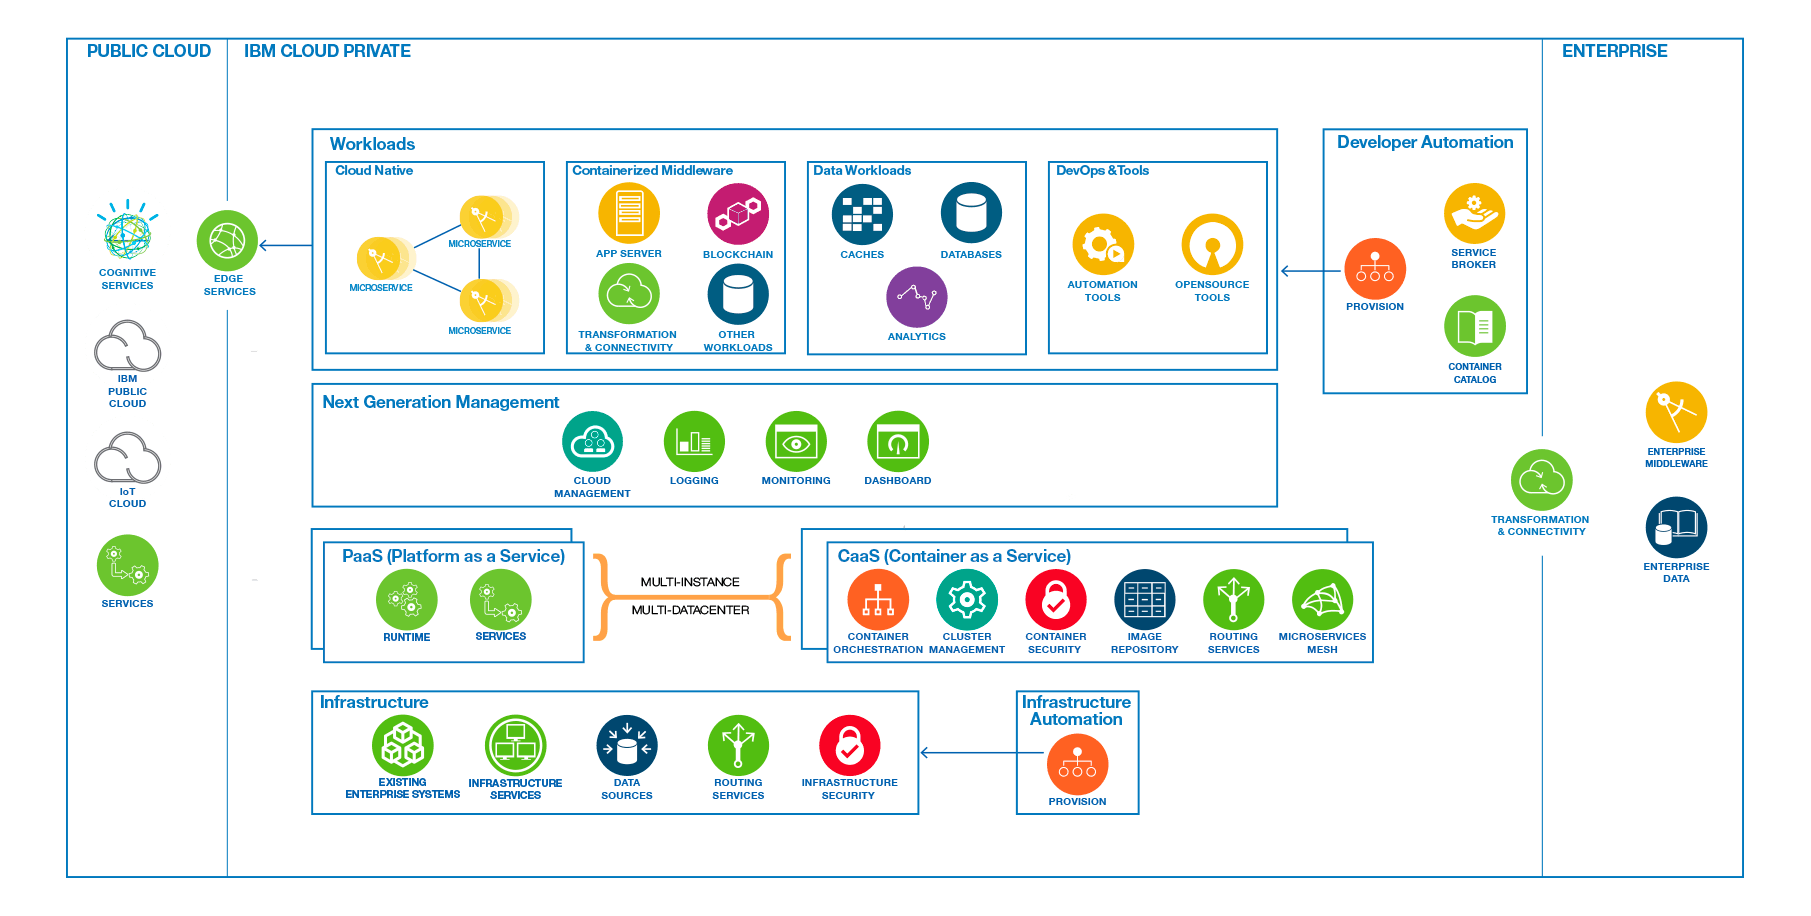 Diagram of the IBM Cloud Private architecture